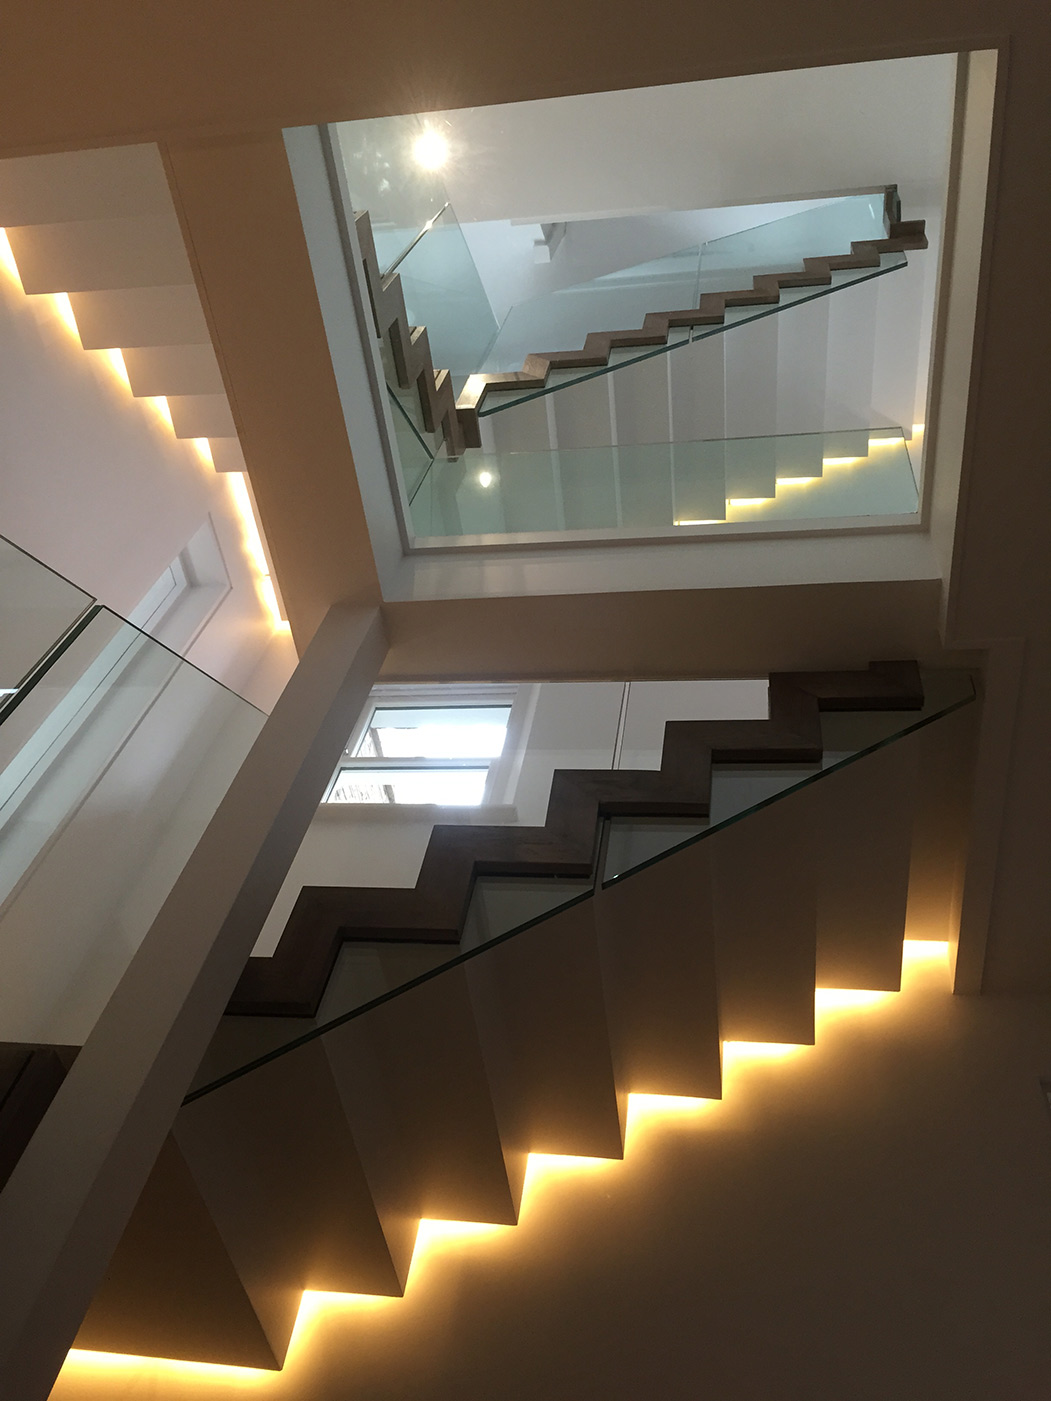 The infinite Escher staircase that features our signature Zigzag stair design